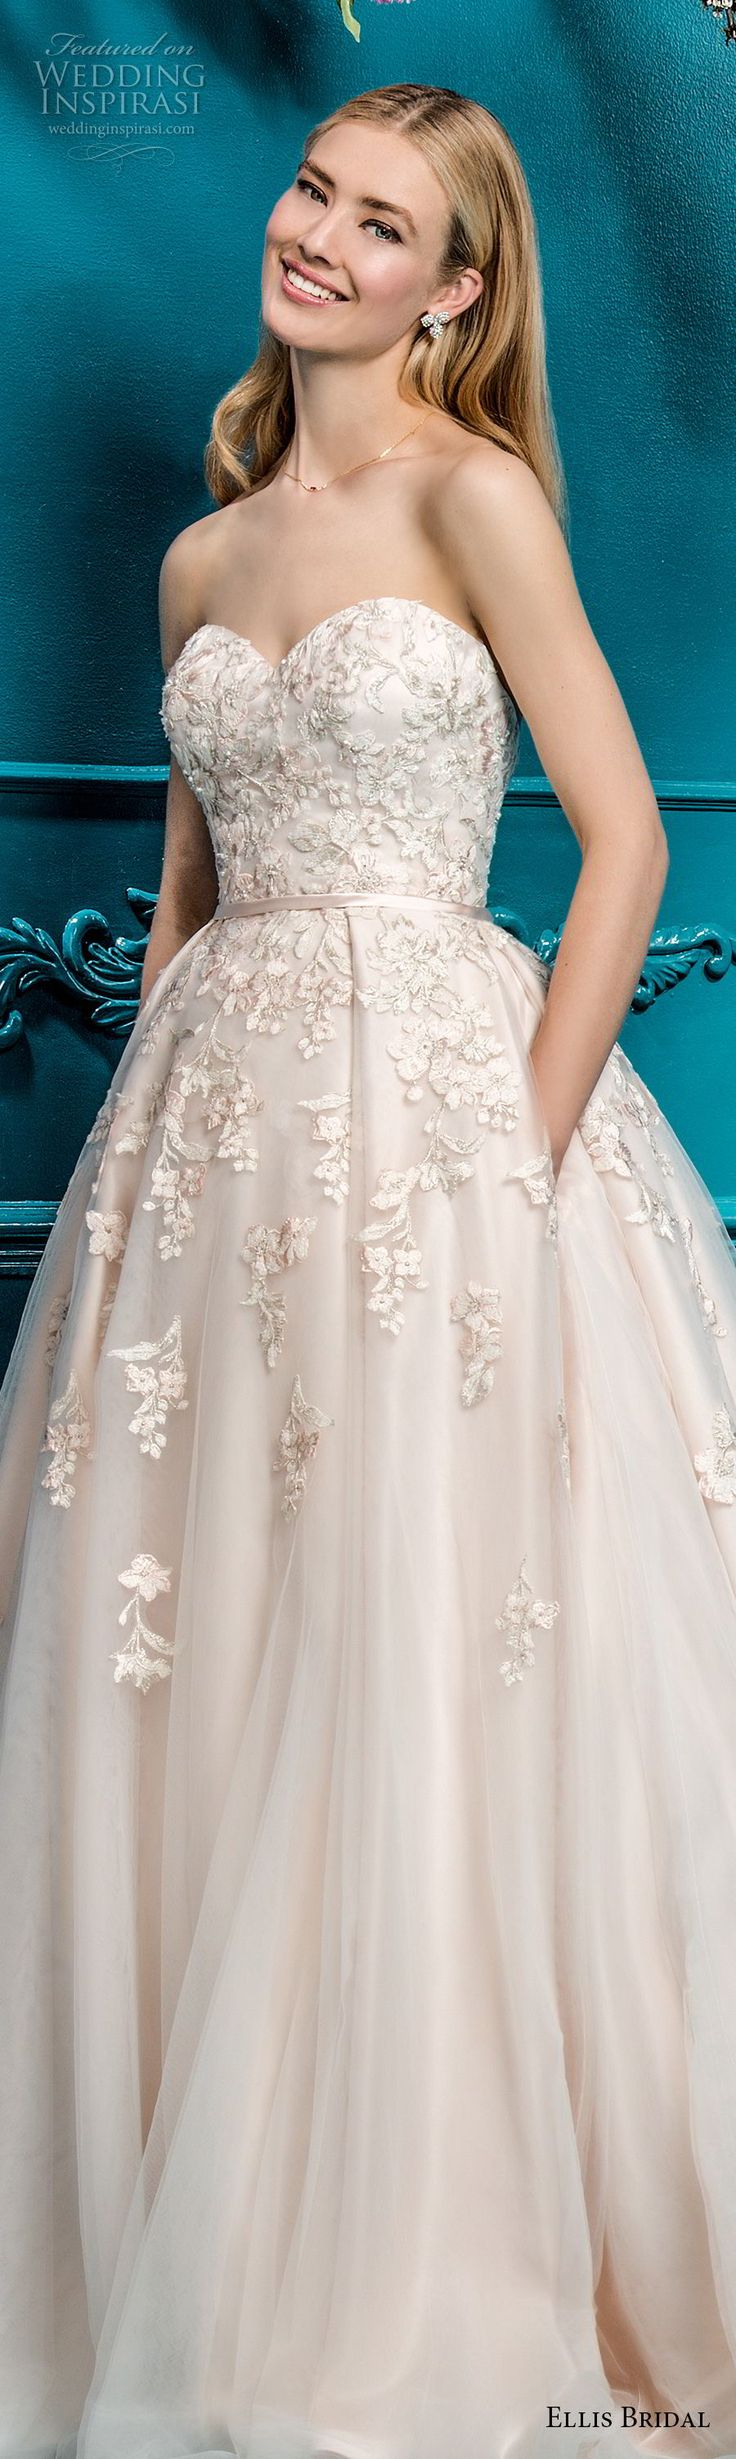 ellis bridals 2018 strapless sweetheart neckline heavily embellished bodice romantic a line wedding dress with pockets chapel train (1) lv -- Ellis Bridals 2018 Wedding Dresses